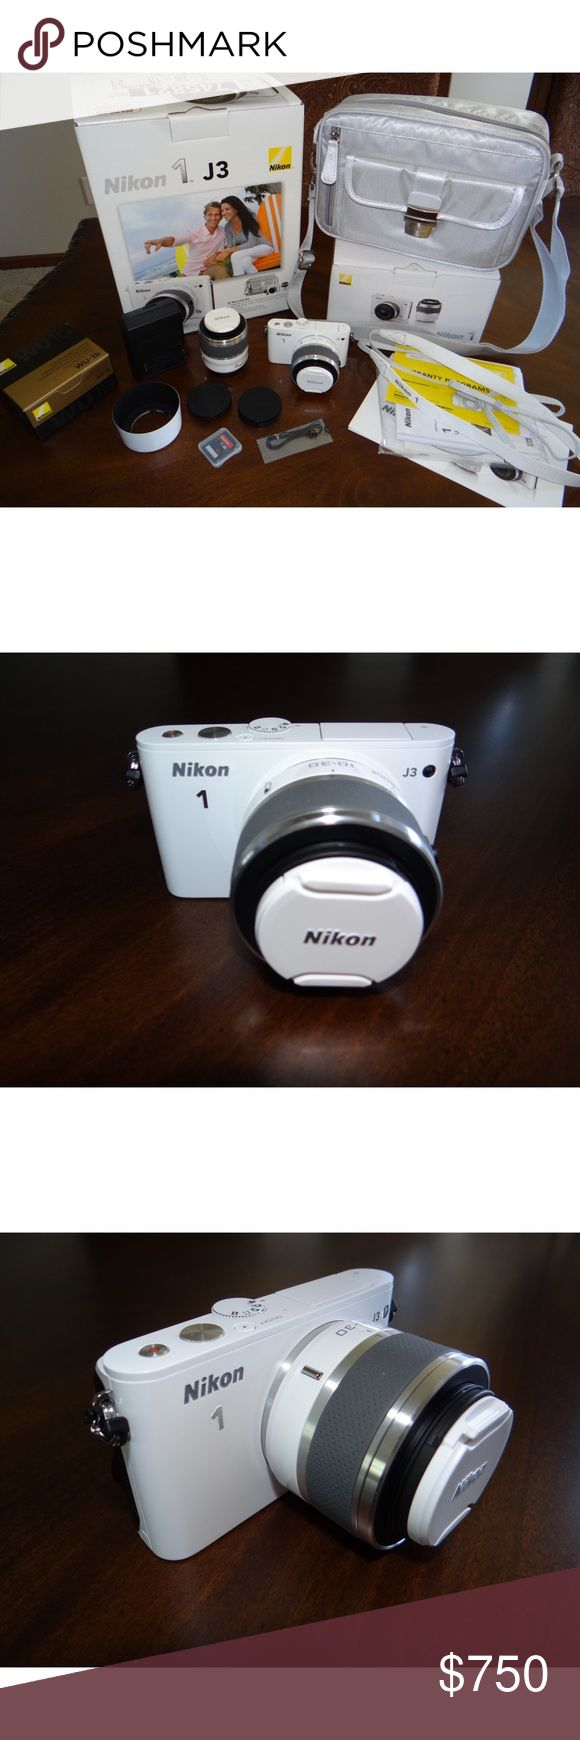 Nikon 1 J3 Digital Camera Practically new camera (comes with EVERYTHING, even original packaging)  Used only up to 3 times (indoors ONLY)  No signs of use!  No scratches on camera, lenses, or anything else that comes with it!  Takes really good quality photos and videos! Perfect for blogging/bloggers/traveling!  Please don't hesitate to ask any questions or ask for more photos, due to the limit of photo uploads!  Reason for sale: own 2 more professional cameras!  Paid $999 tax included…